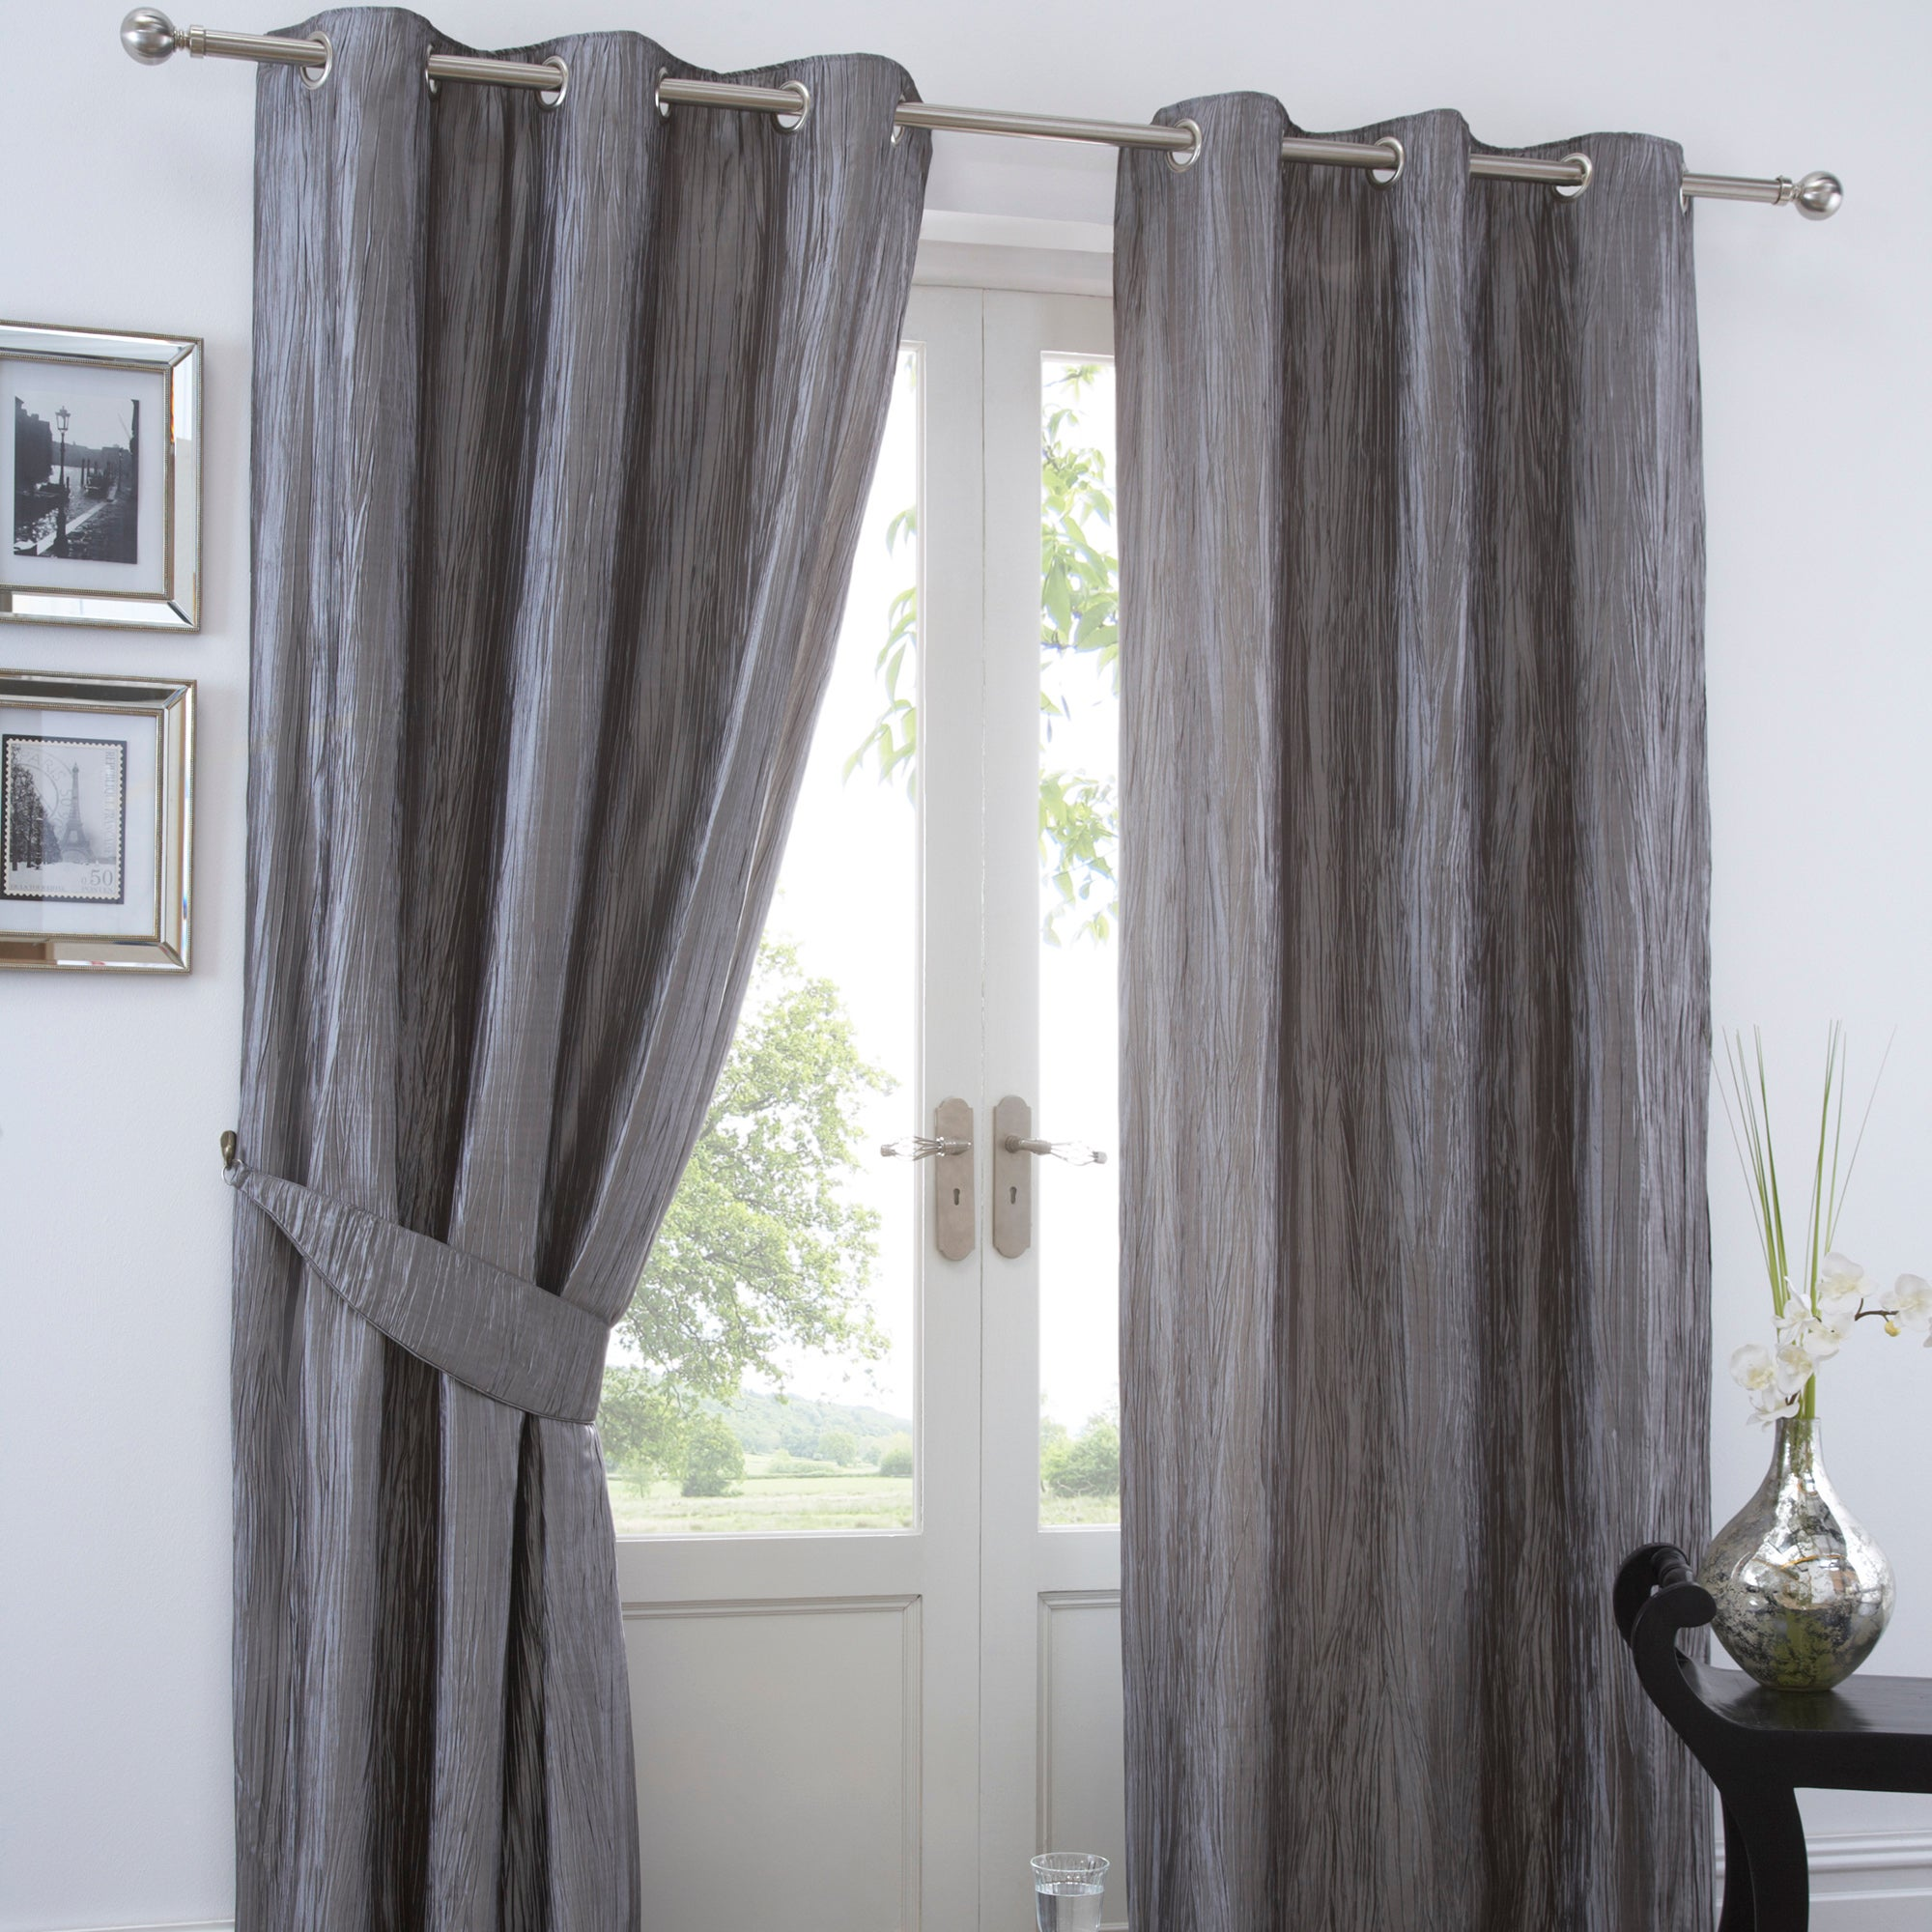 Silver Crushed Taffeta Lined Eyelet Curtains